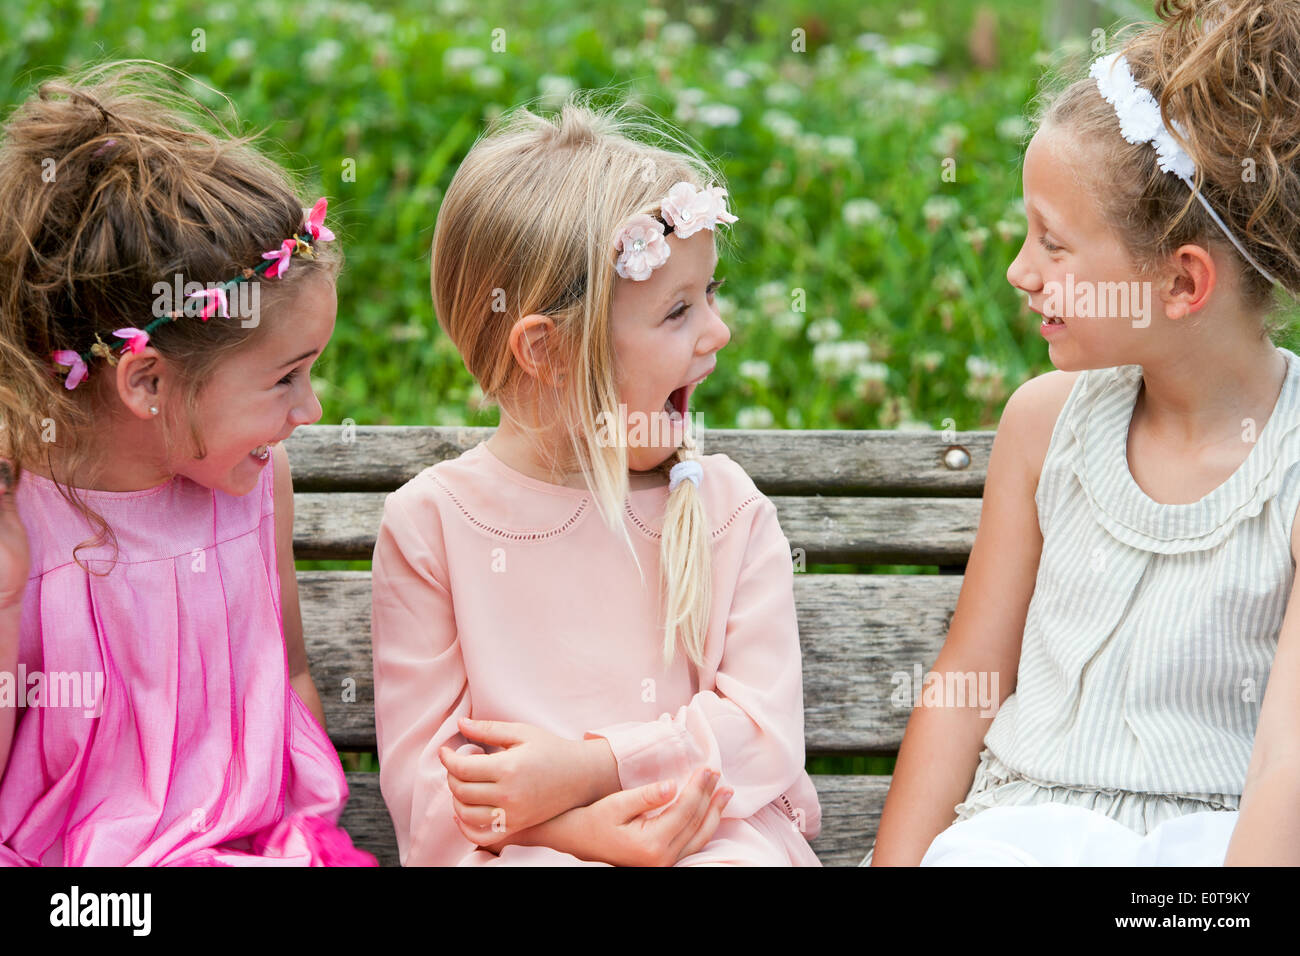 Three cute youngsters on wooden bench having fun. - Stock Image